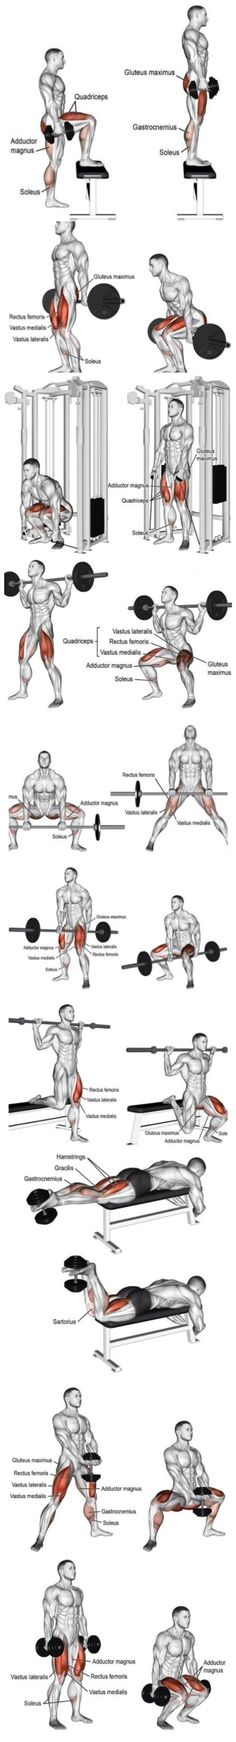 Weighted Leg exercises - Quads and hamstrings